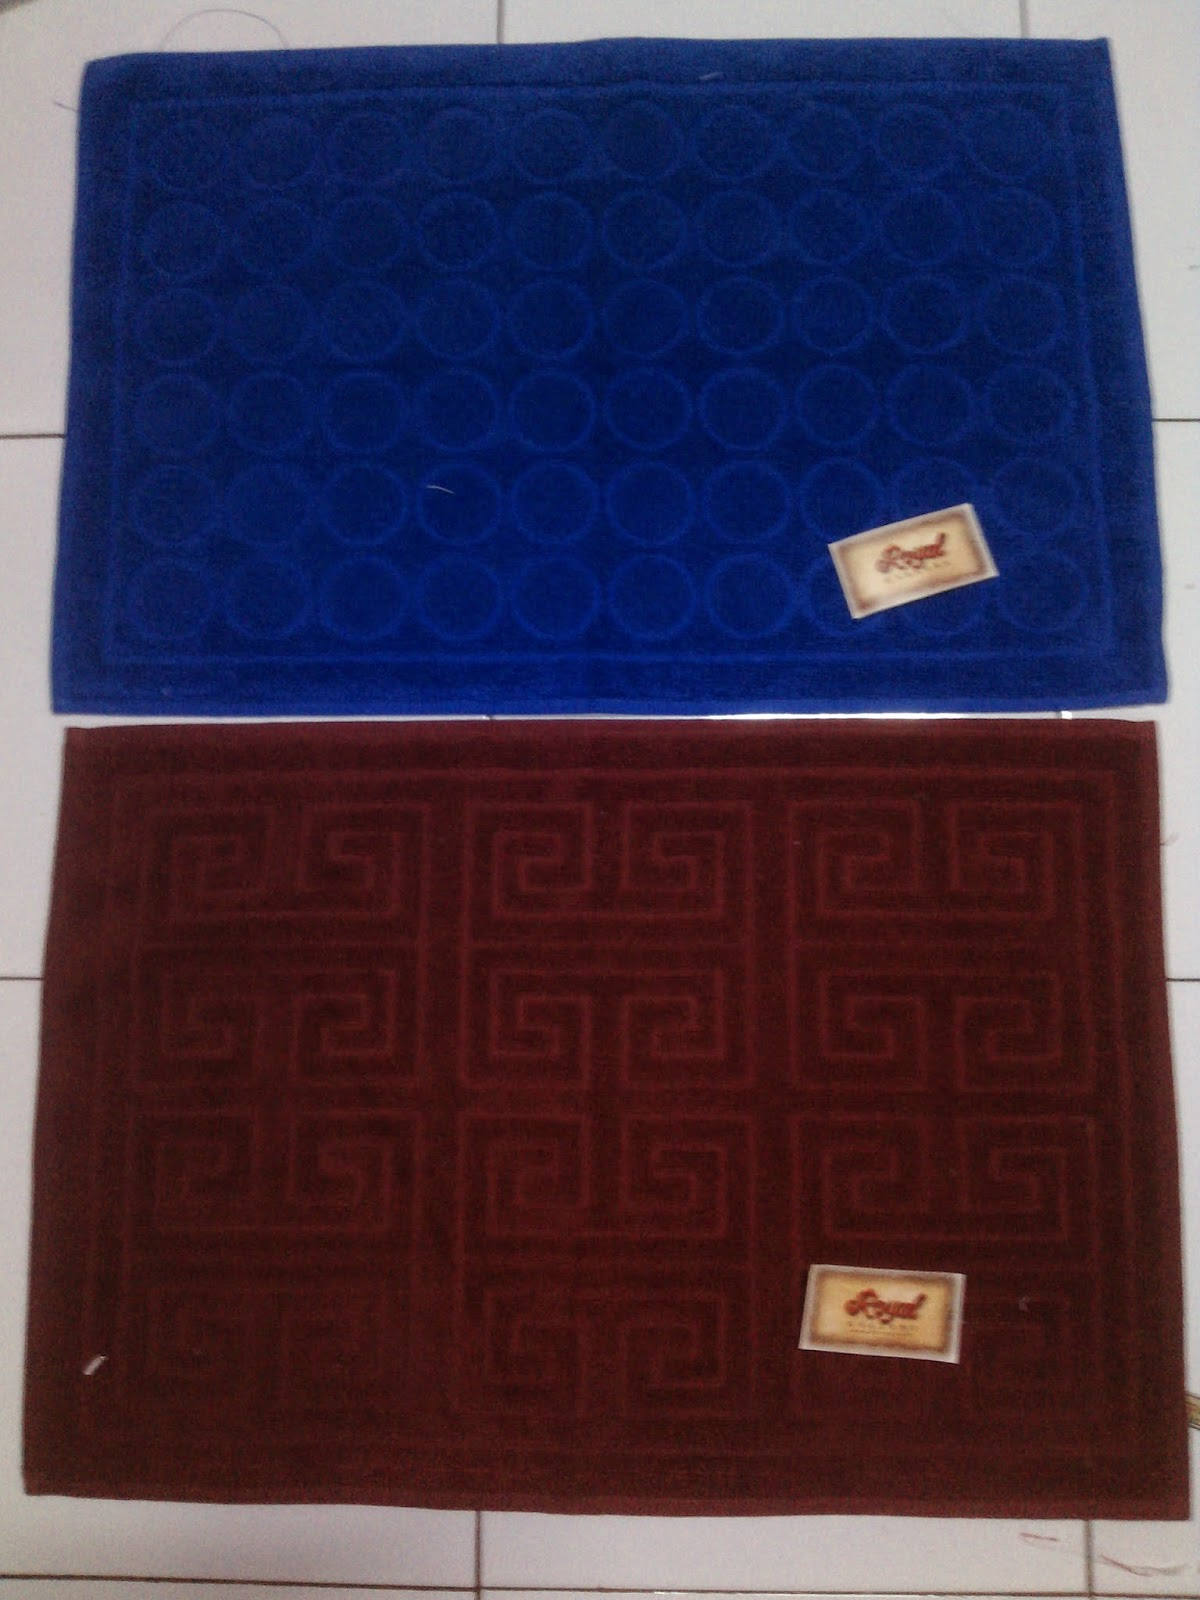 Keset Handuk Royal Blue & Maroon | SupplierHanduk.com